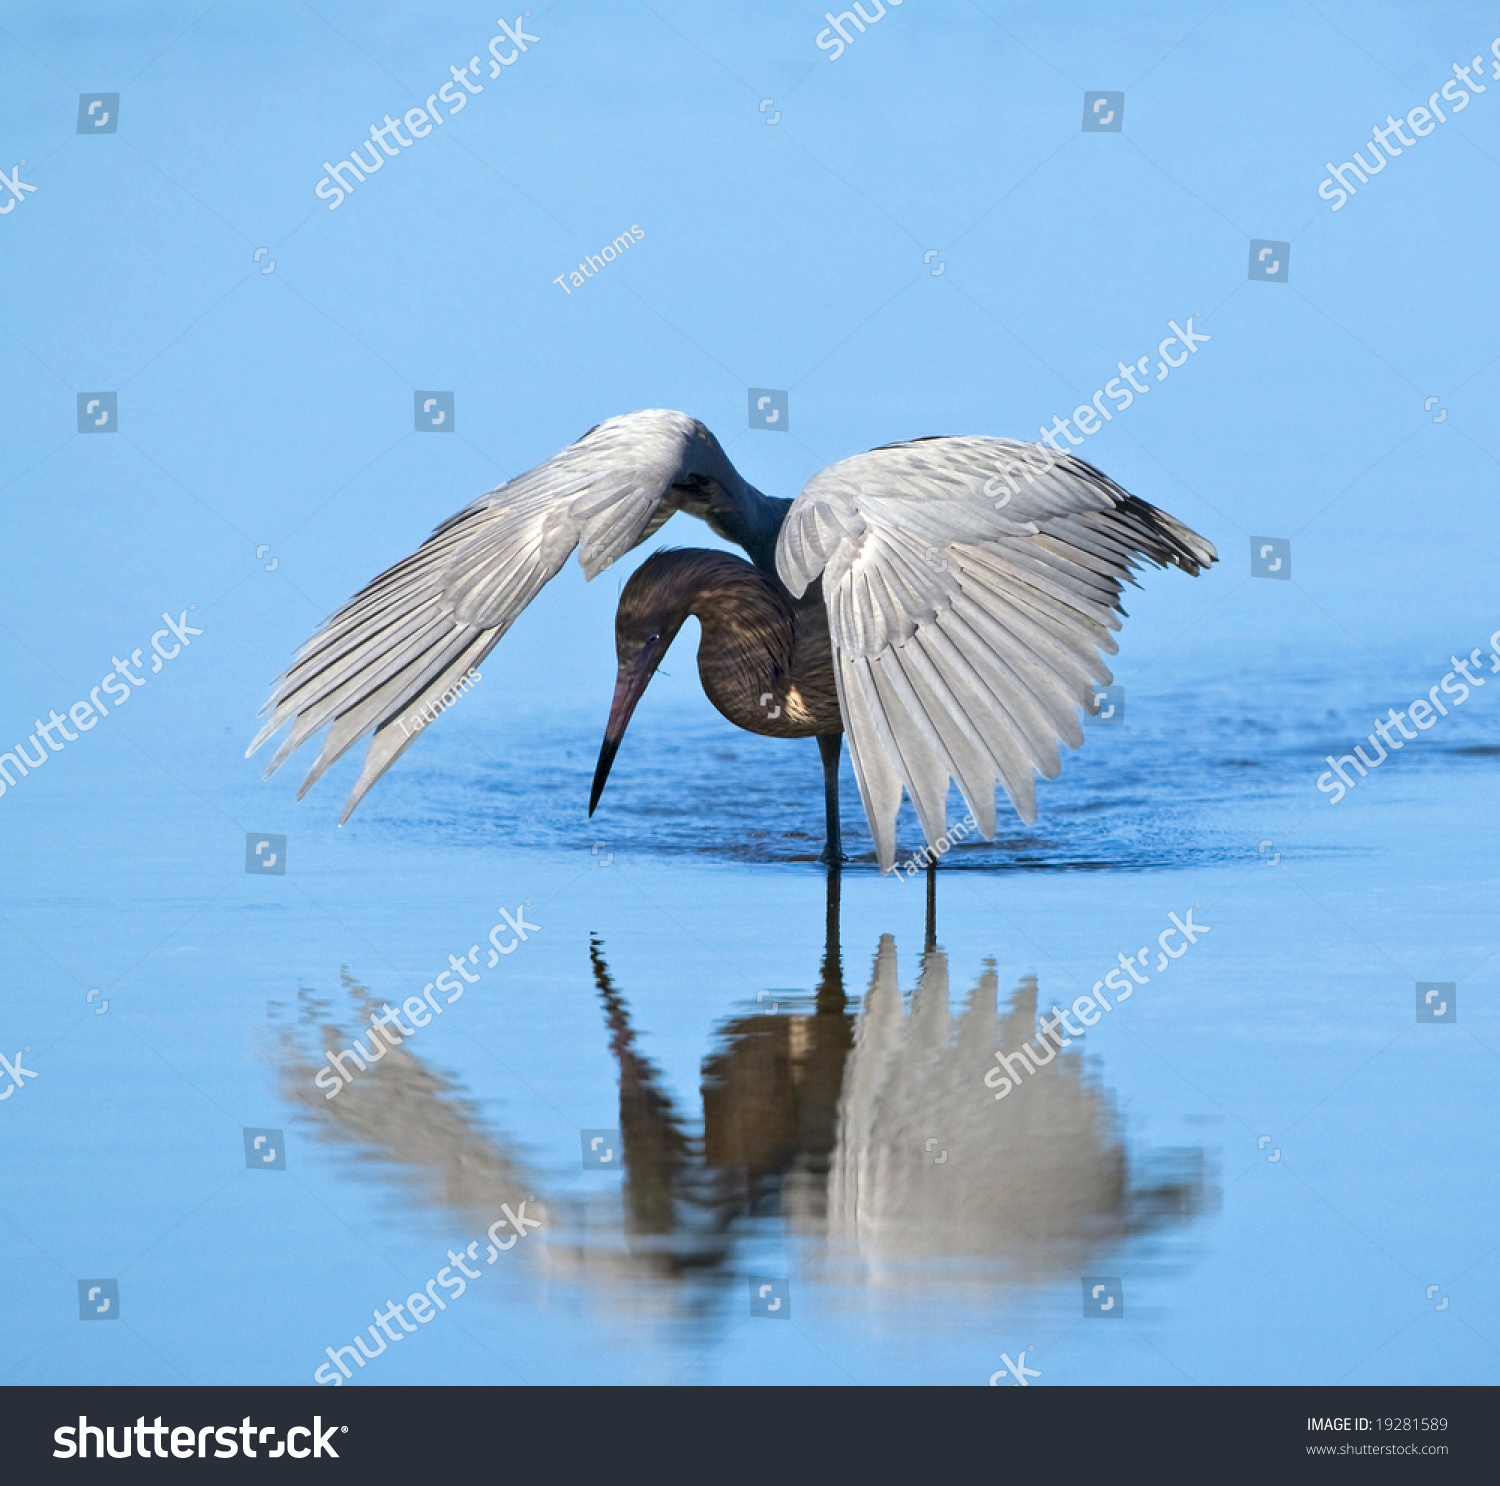 Reddish Egret hunting by shading the water